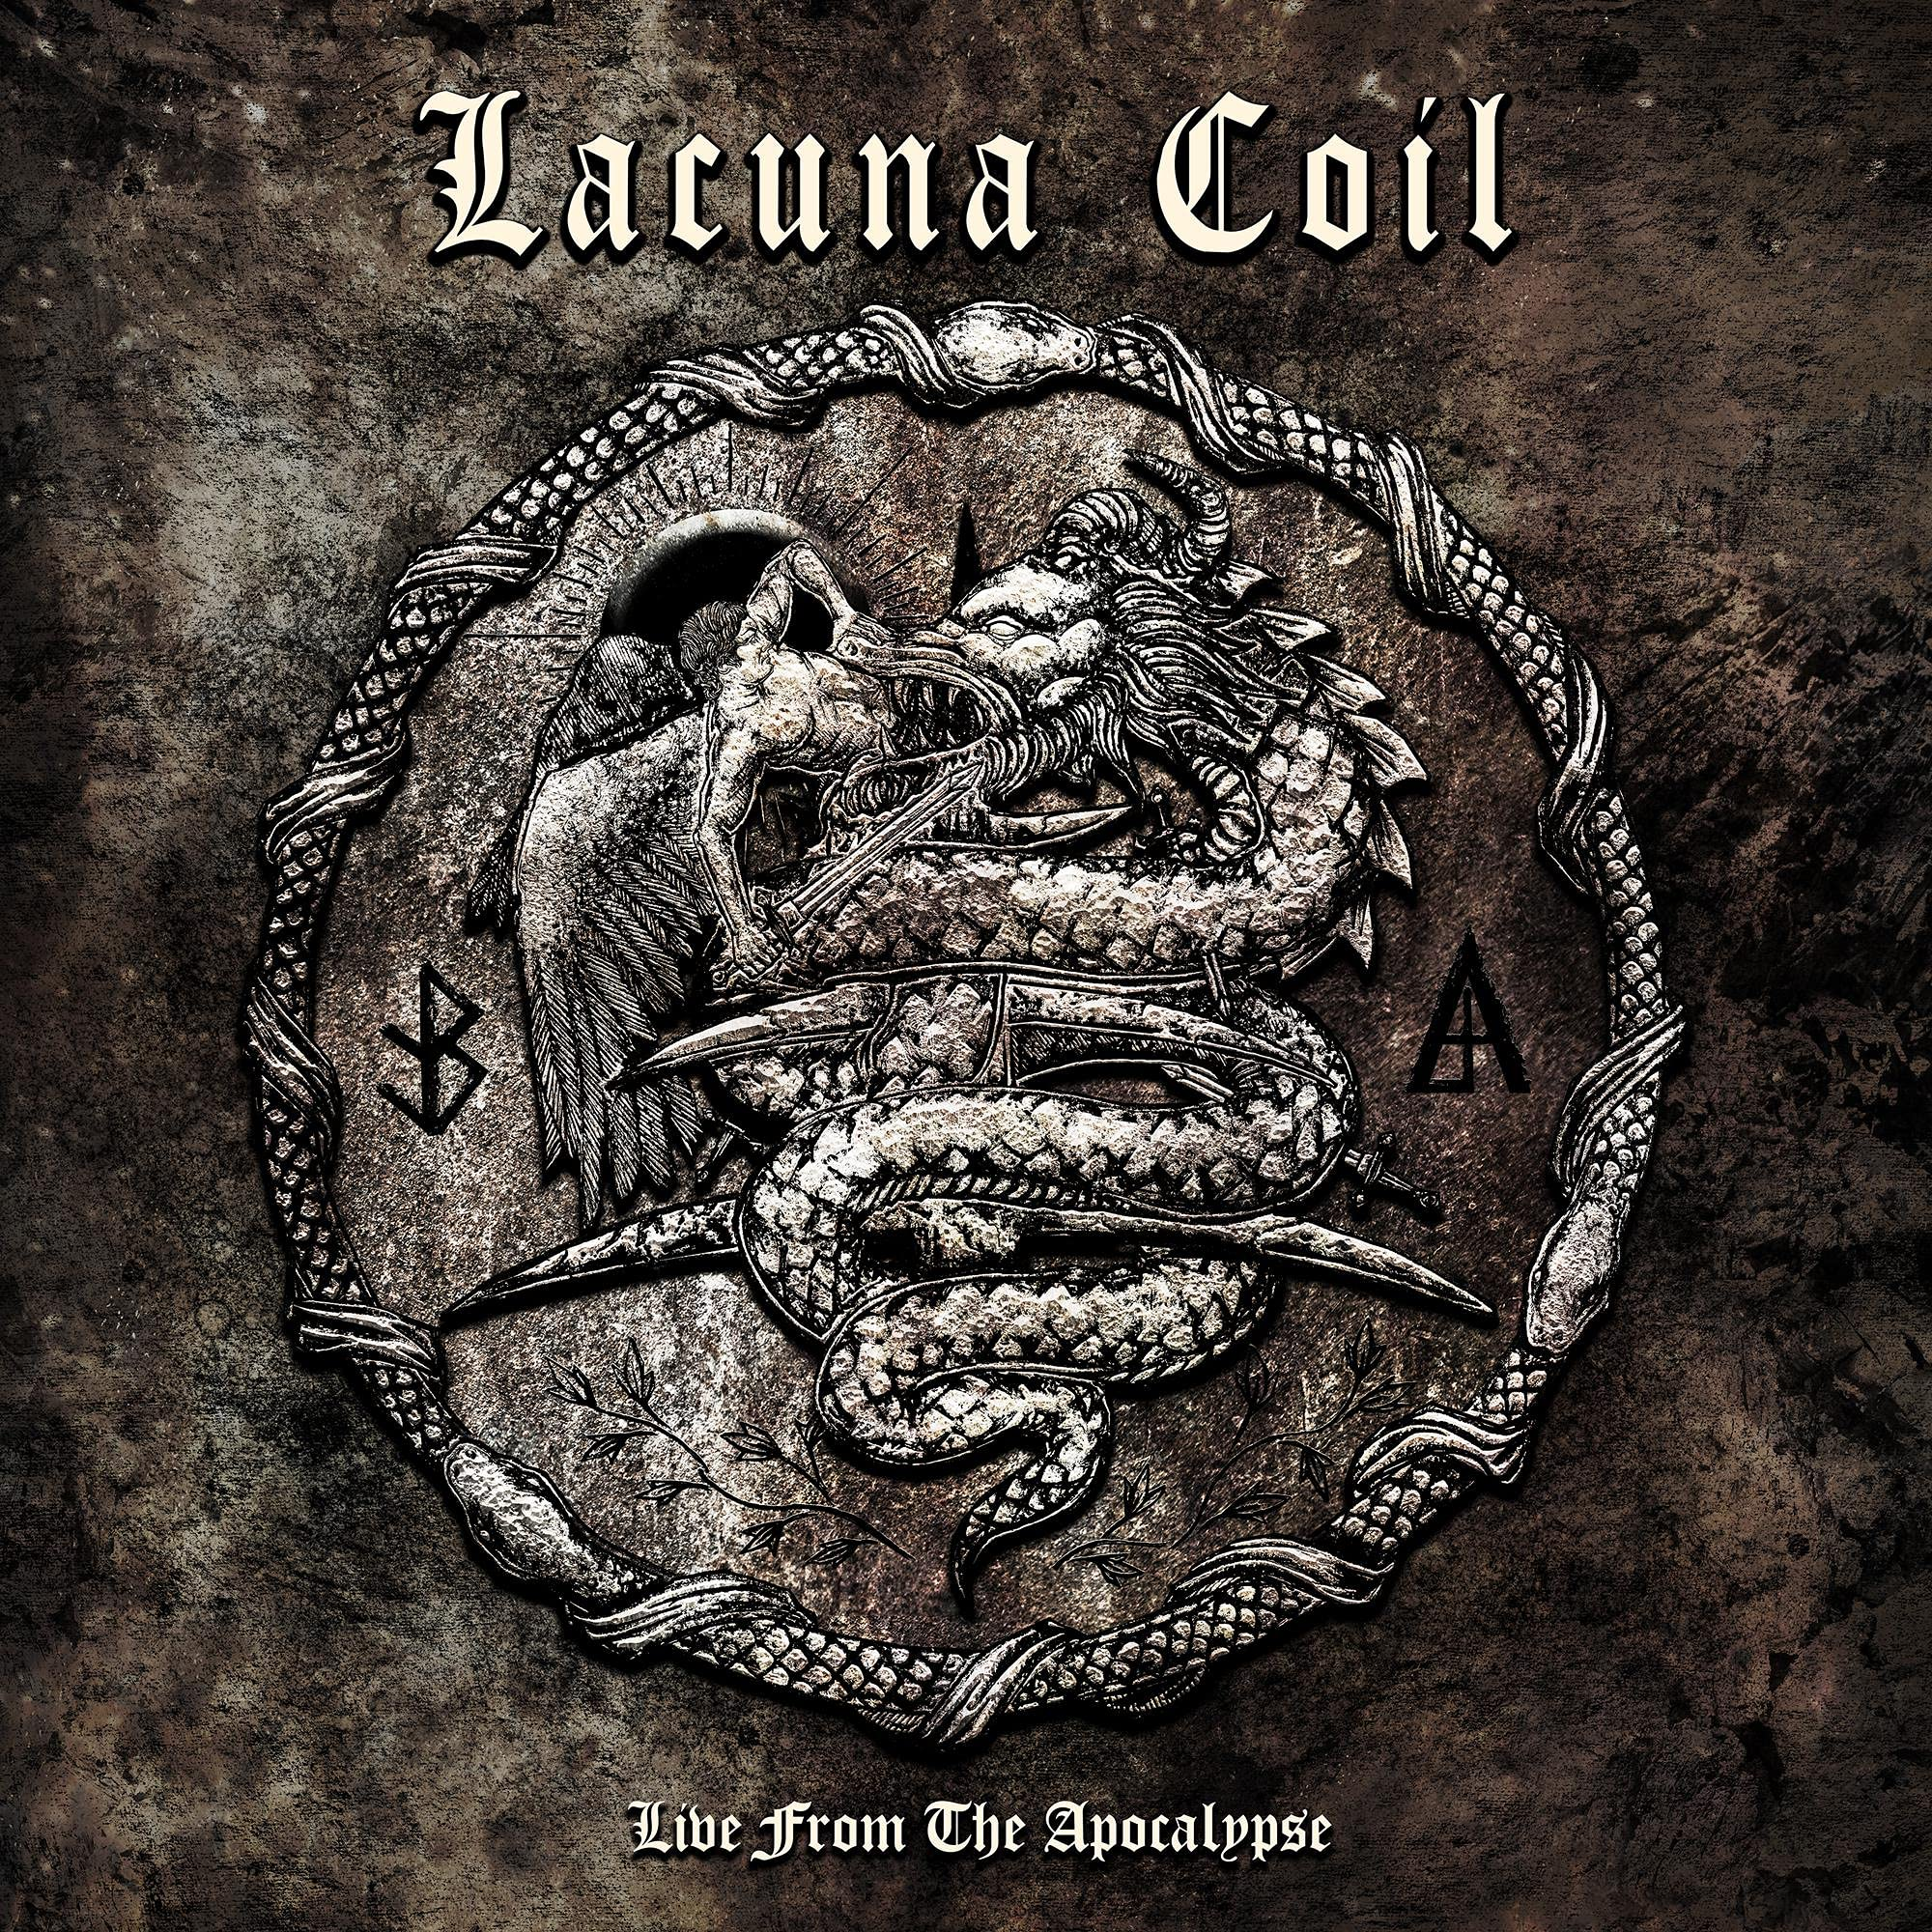 Lacuna Coil - Live From The Apocalypse (2021) [FLAC] Download